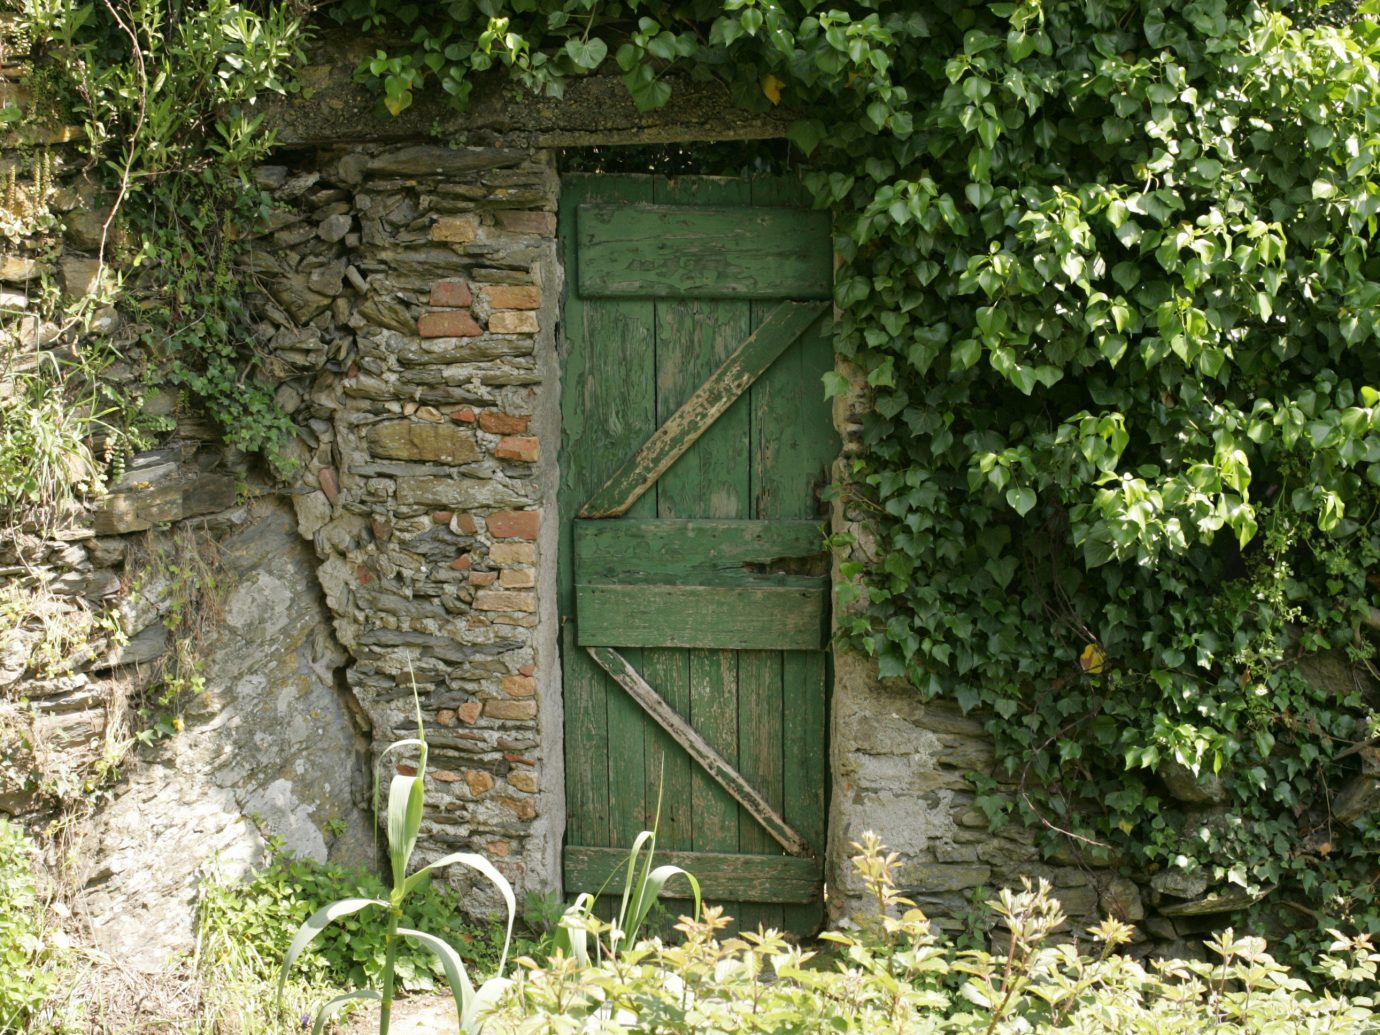 Offbeat outdoor tree green building wall woodland shed rural area Garden cottage yard house outdoor structure outhouse flower shrub trail plant